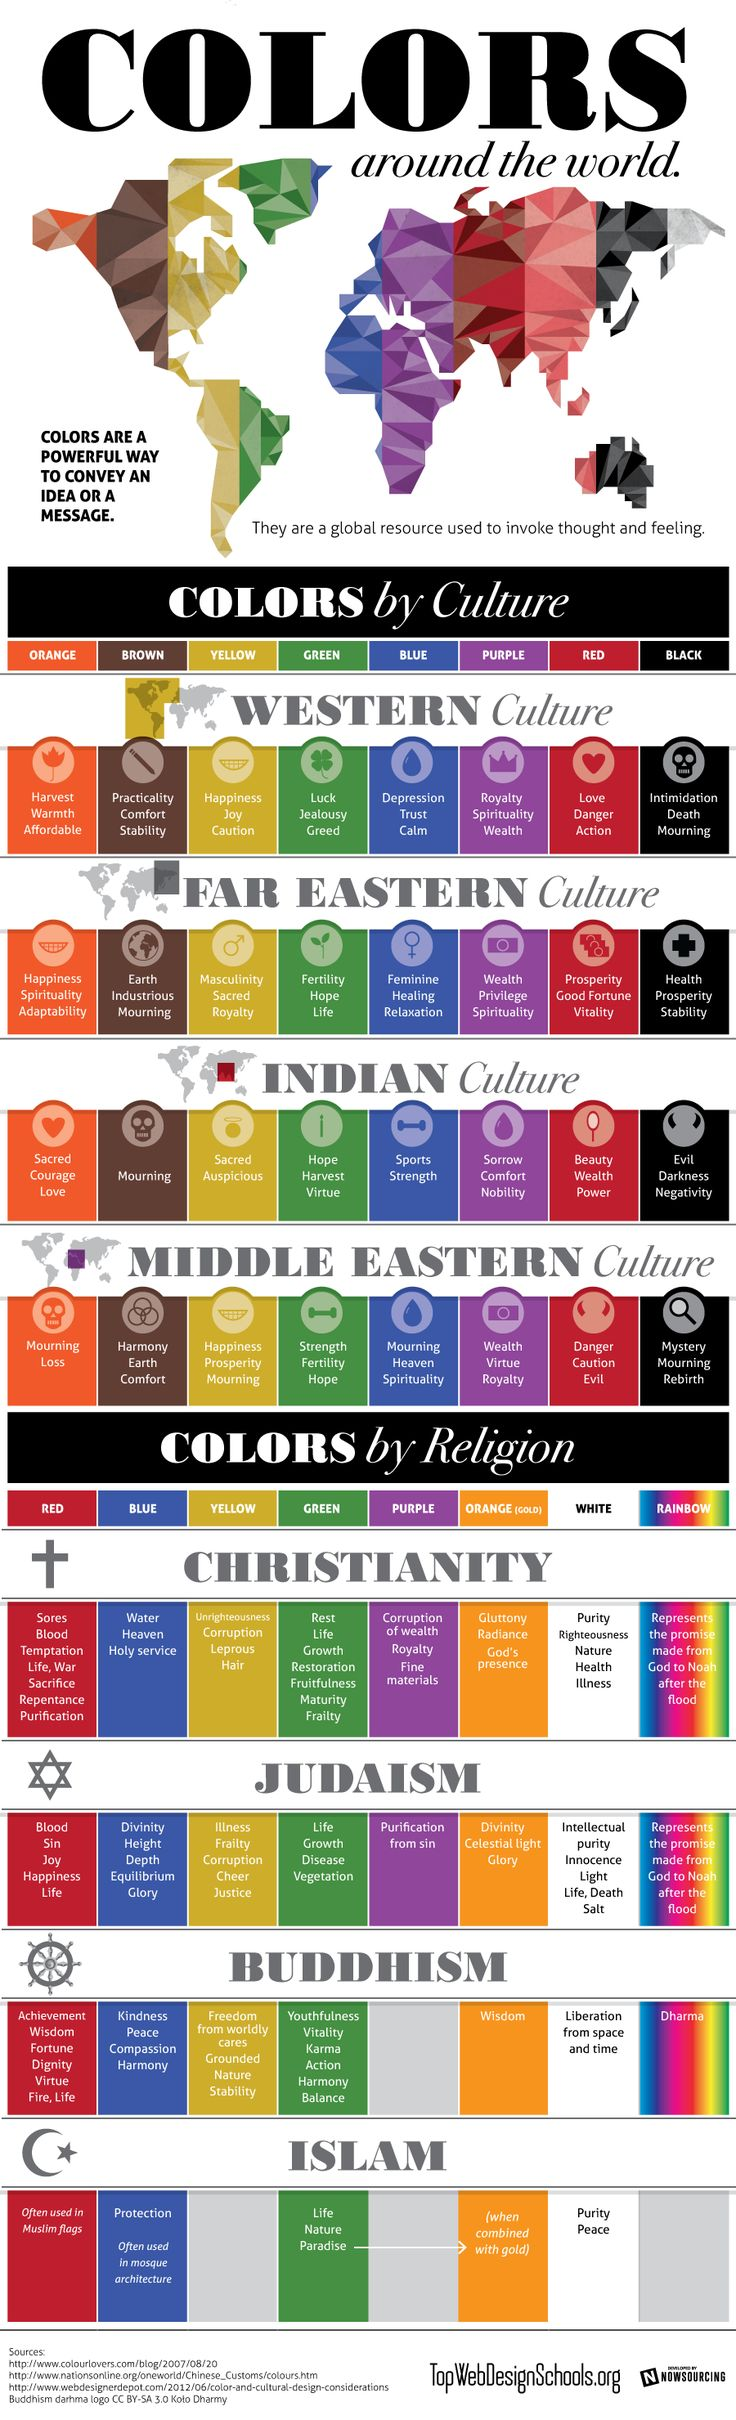 Colors by Culture - What does color mean to you. Fascinating look at what colors mean to people from different religions and countries.